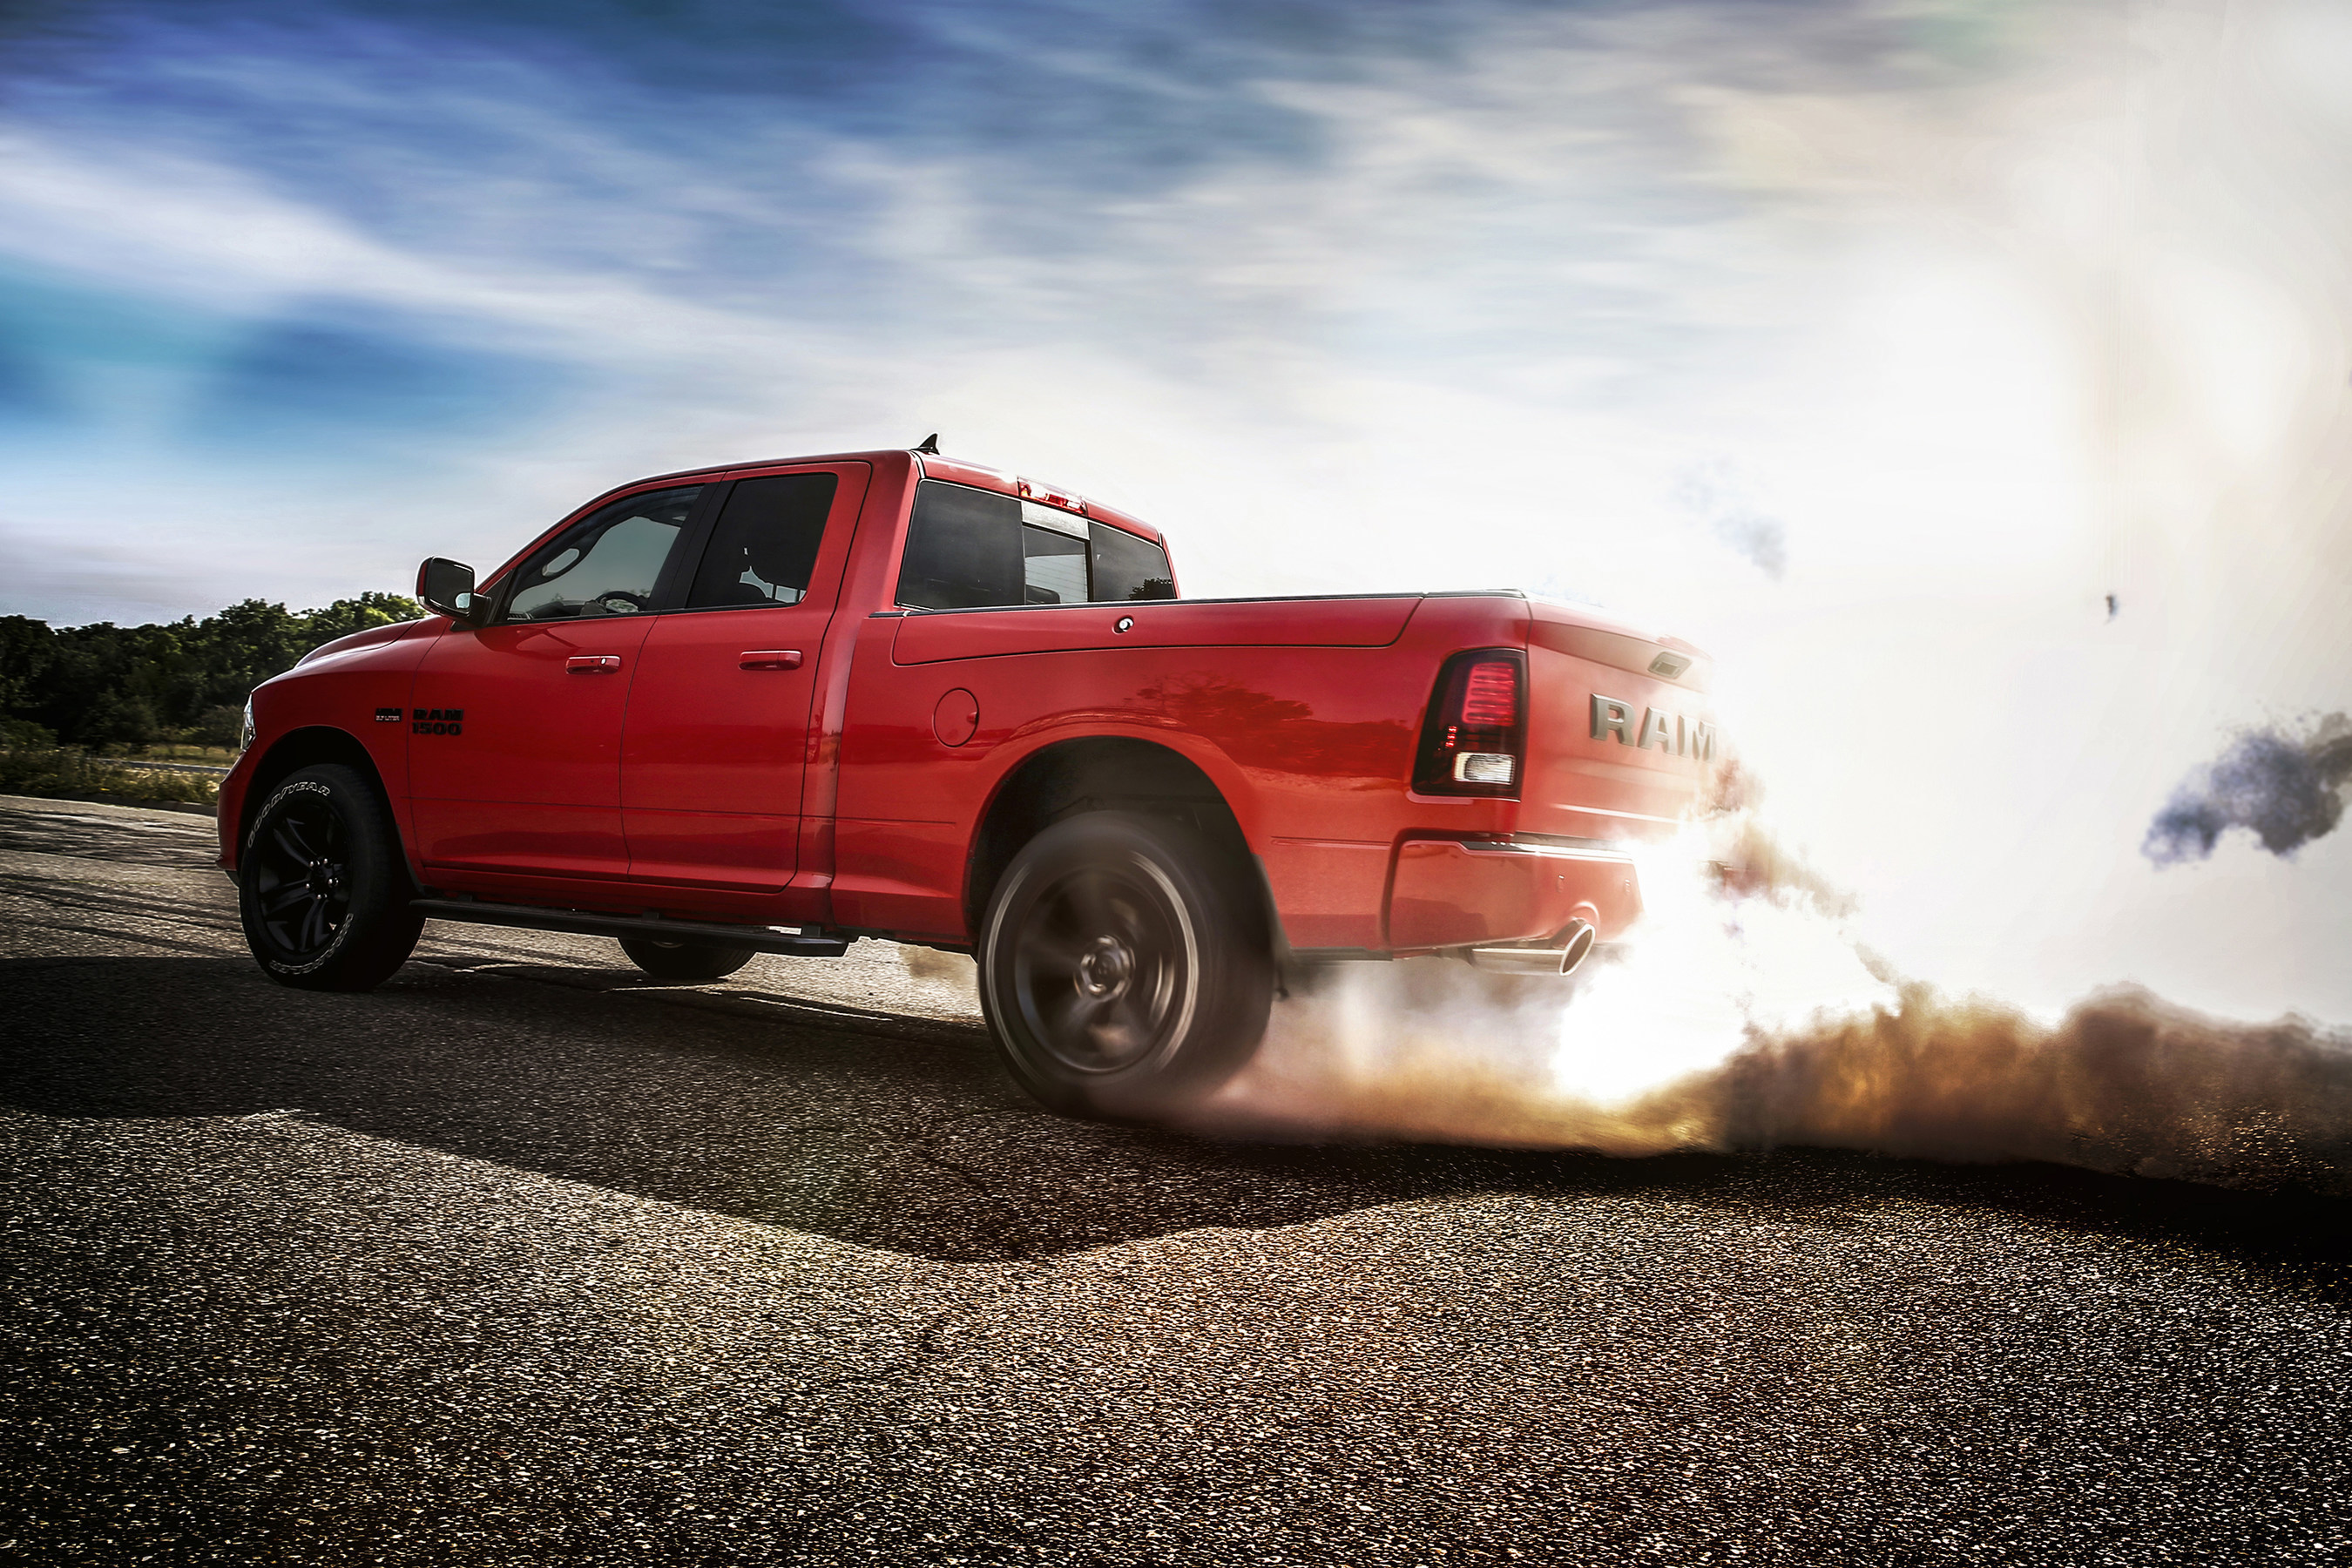 New Special Edition Night Package Announced For 2017 Ram 1500